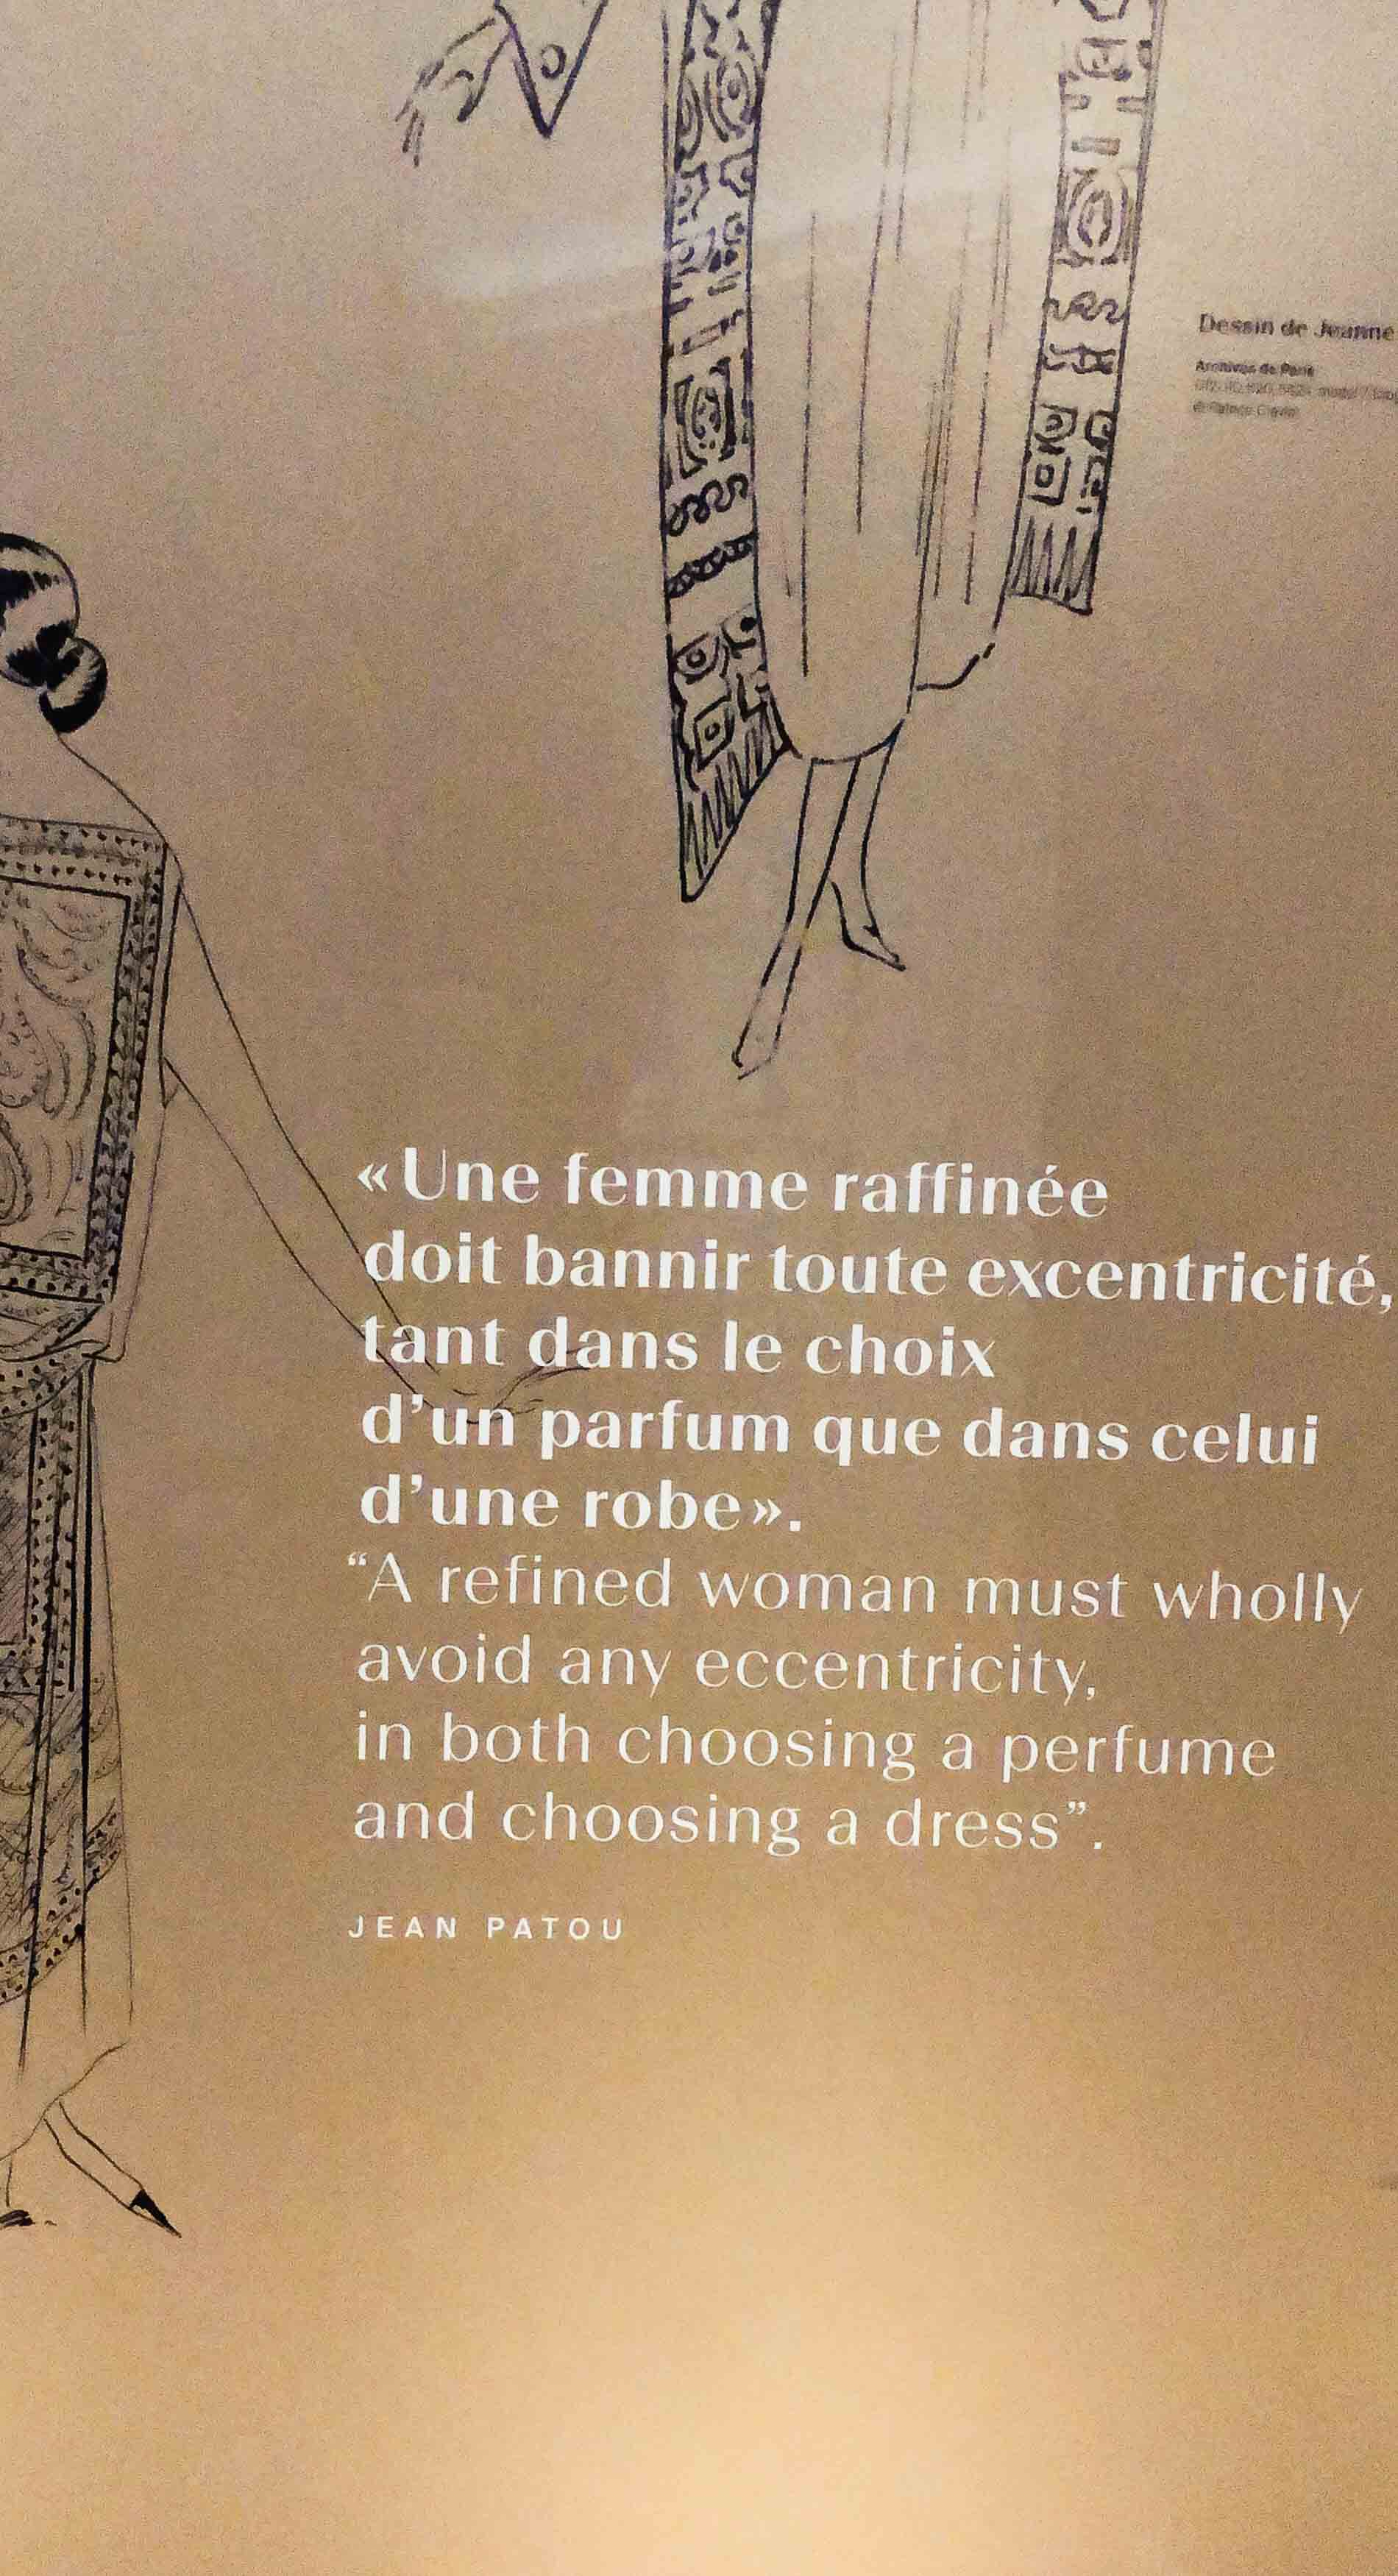 A refined woman must wholly avoid any eccentricity in both choosing a perfume and choosing a dress. Jean Patou